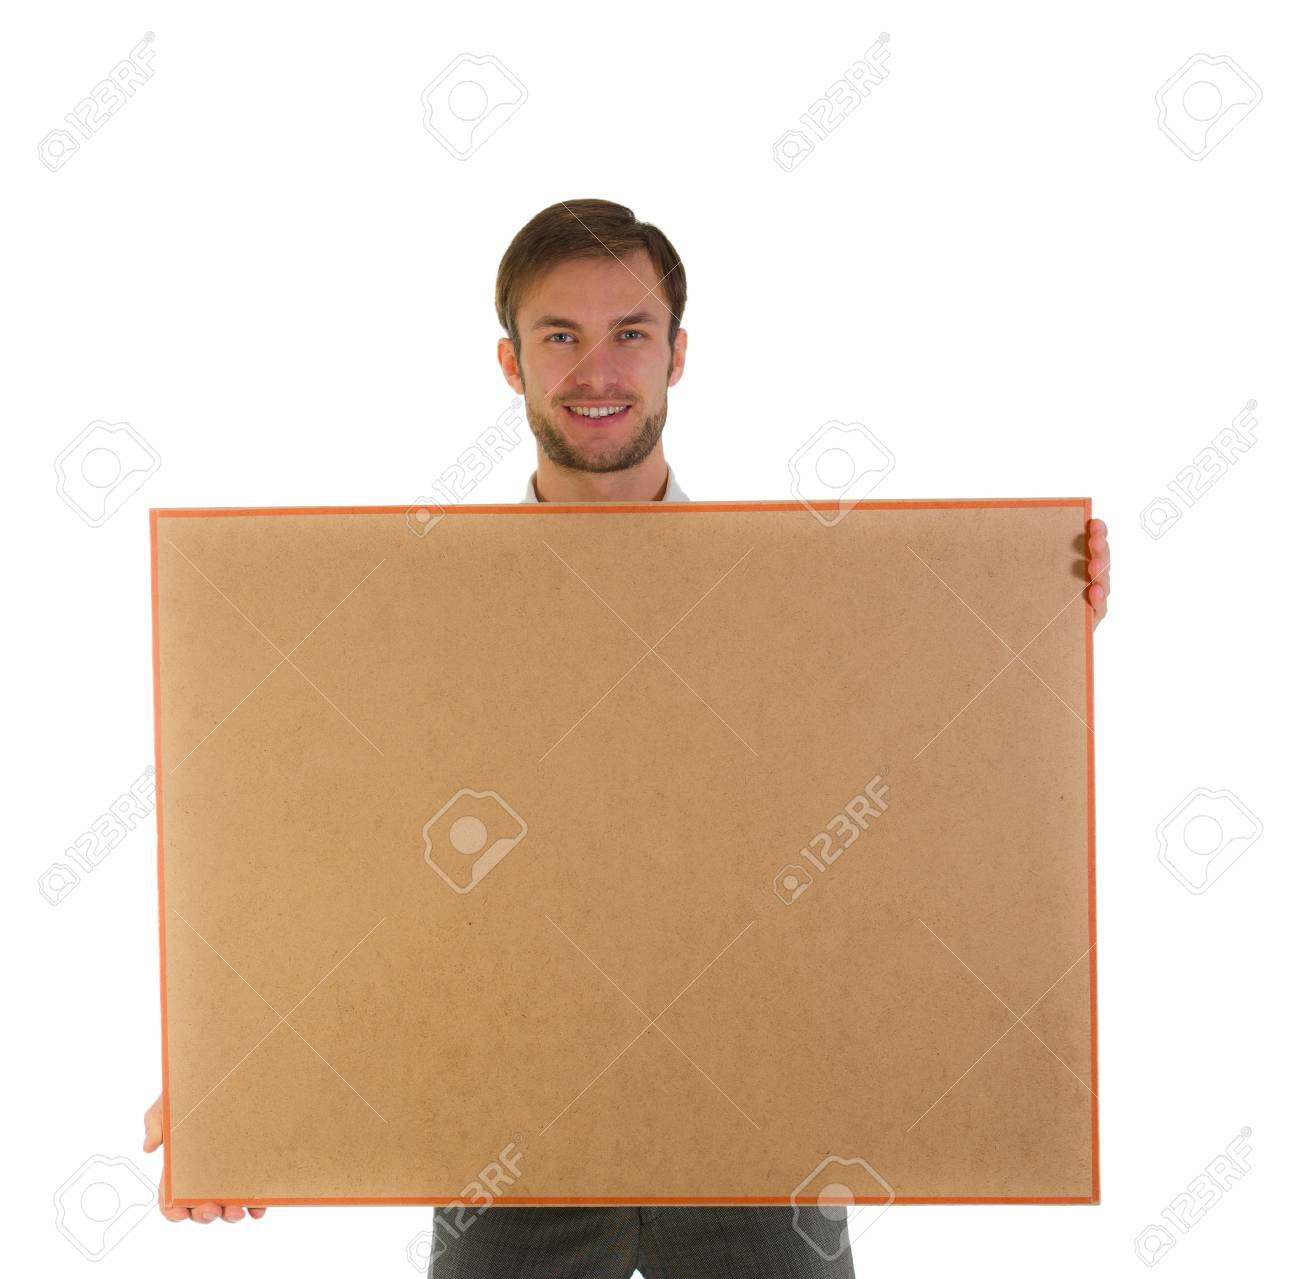 simatichny cheerful businessman with a board in the hands, isolated on a white background Stock Photo - 18600749